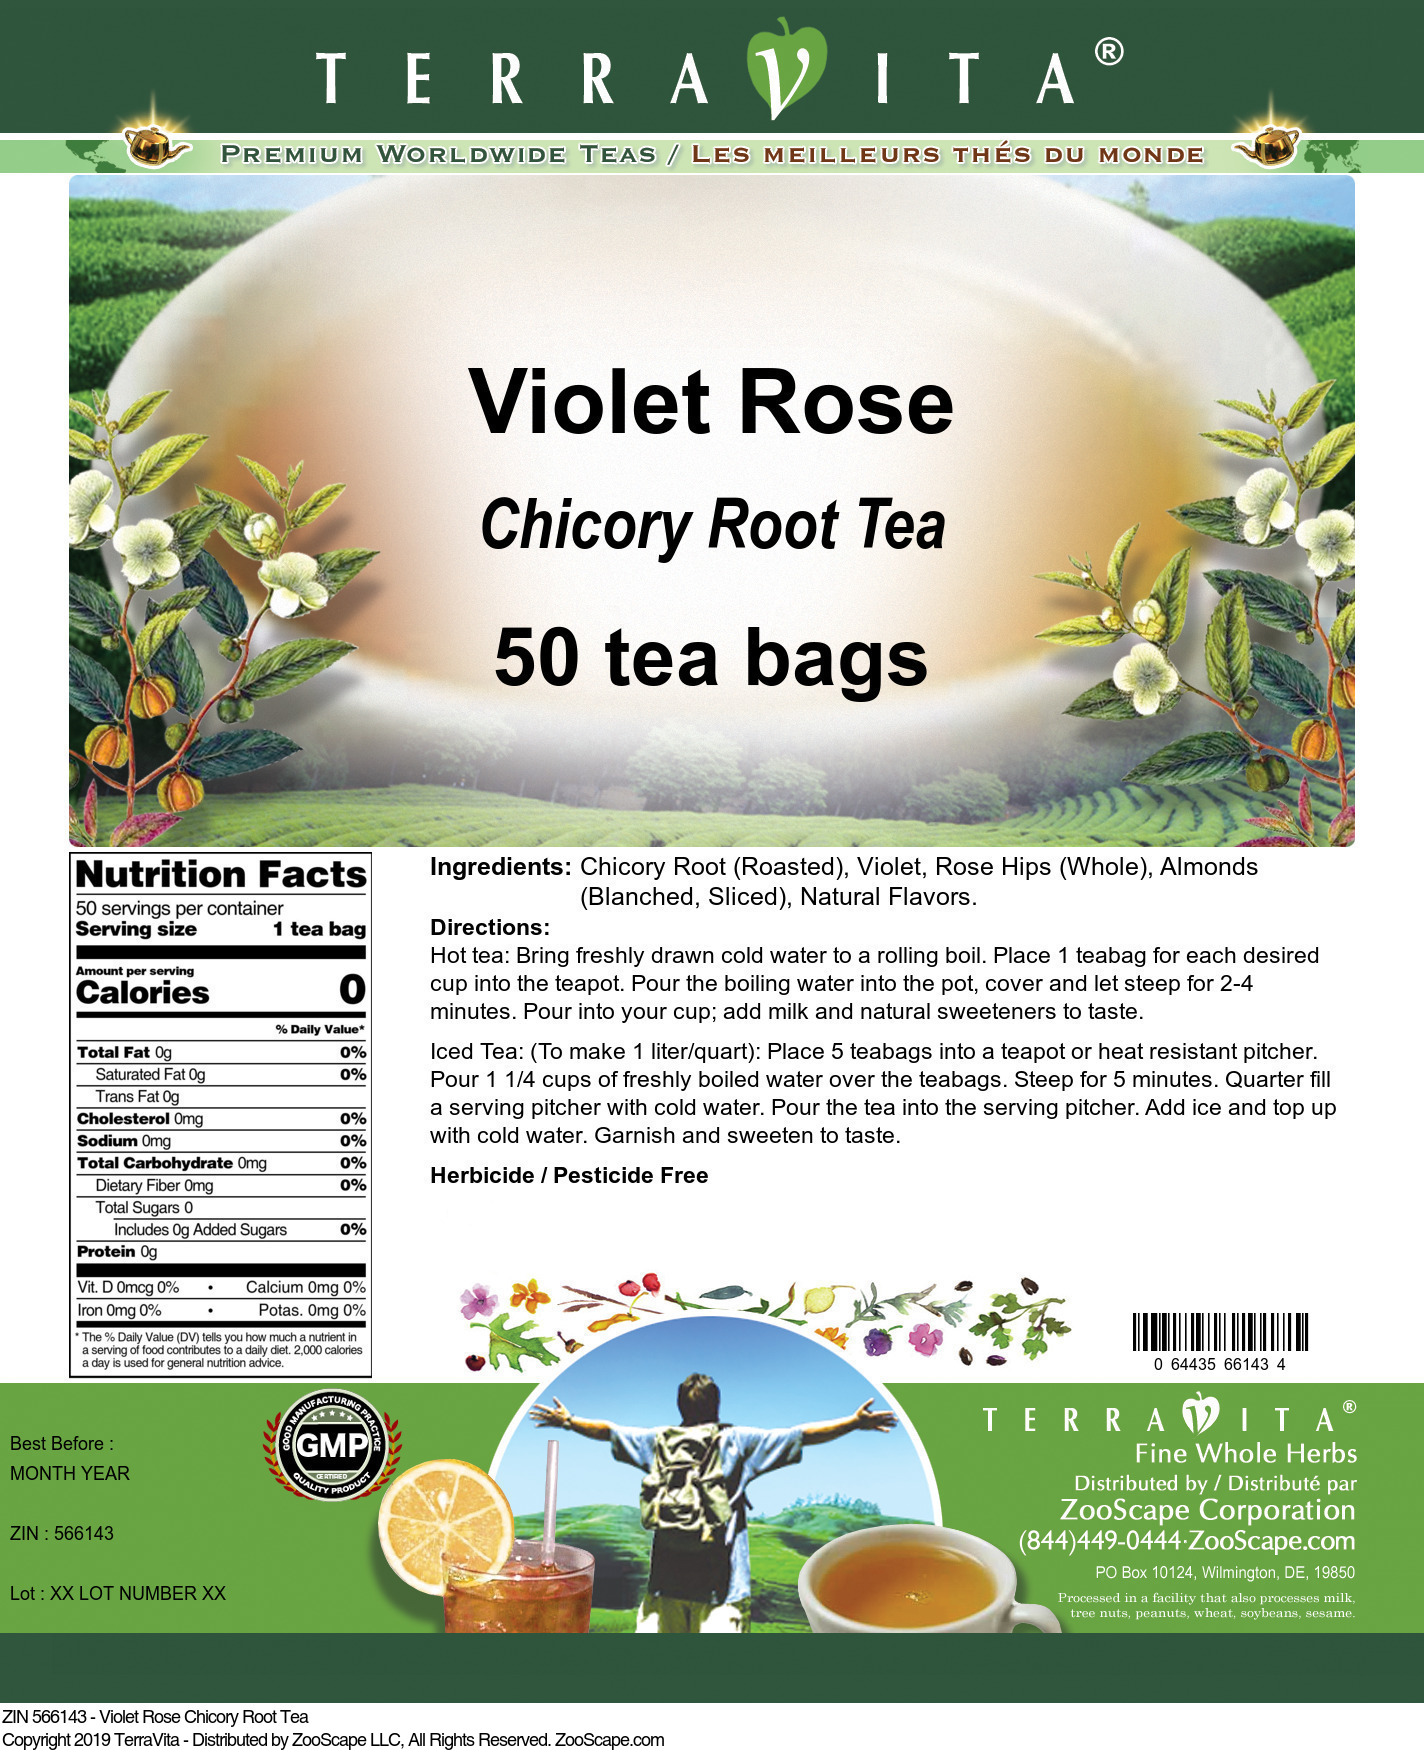 Violet Rose Chicory Root